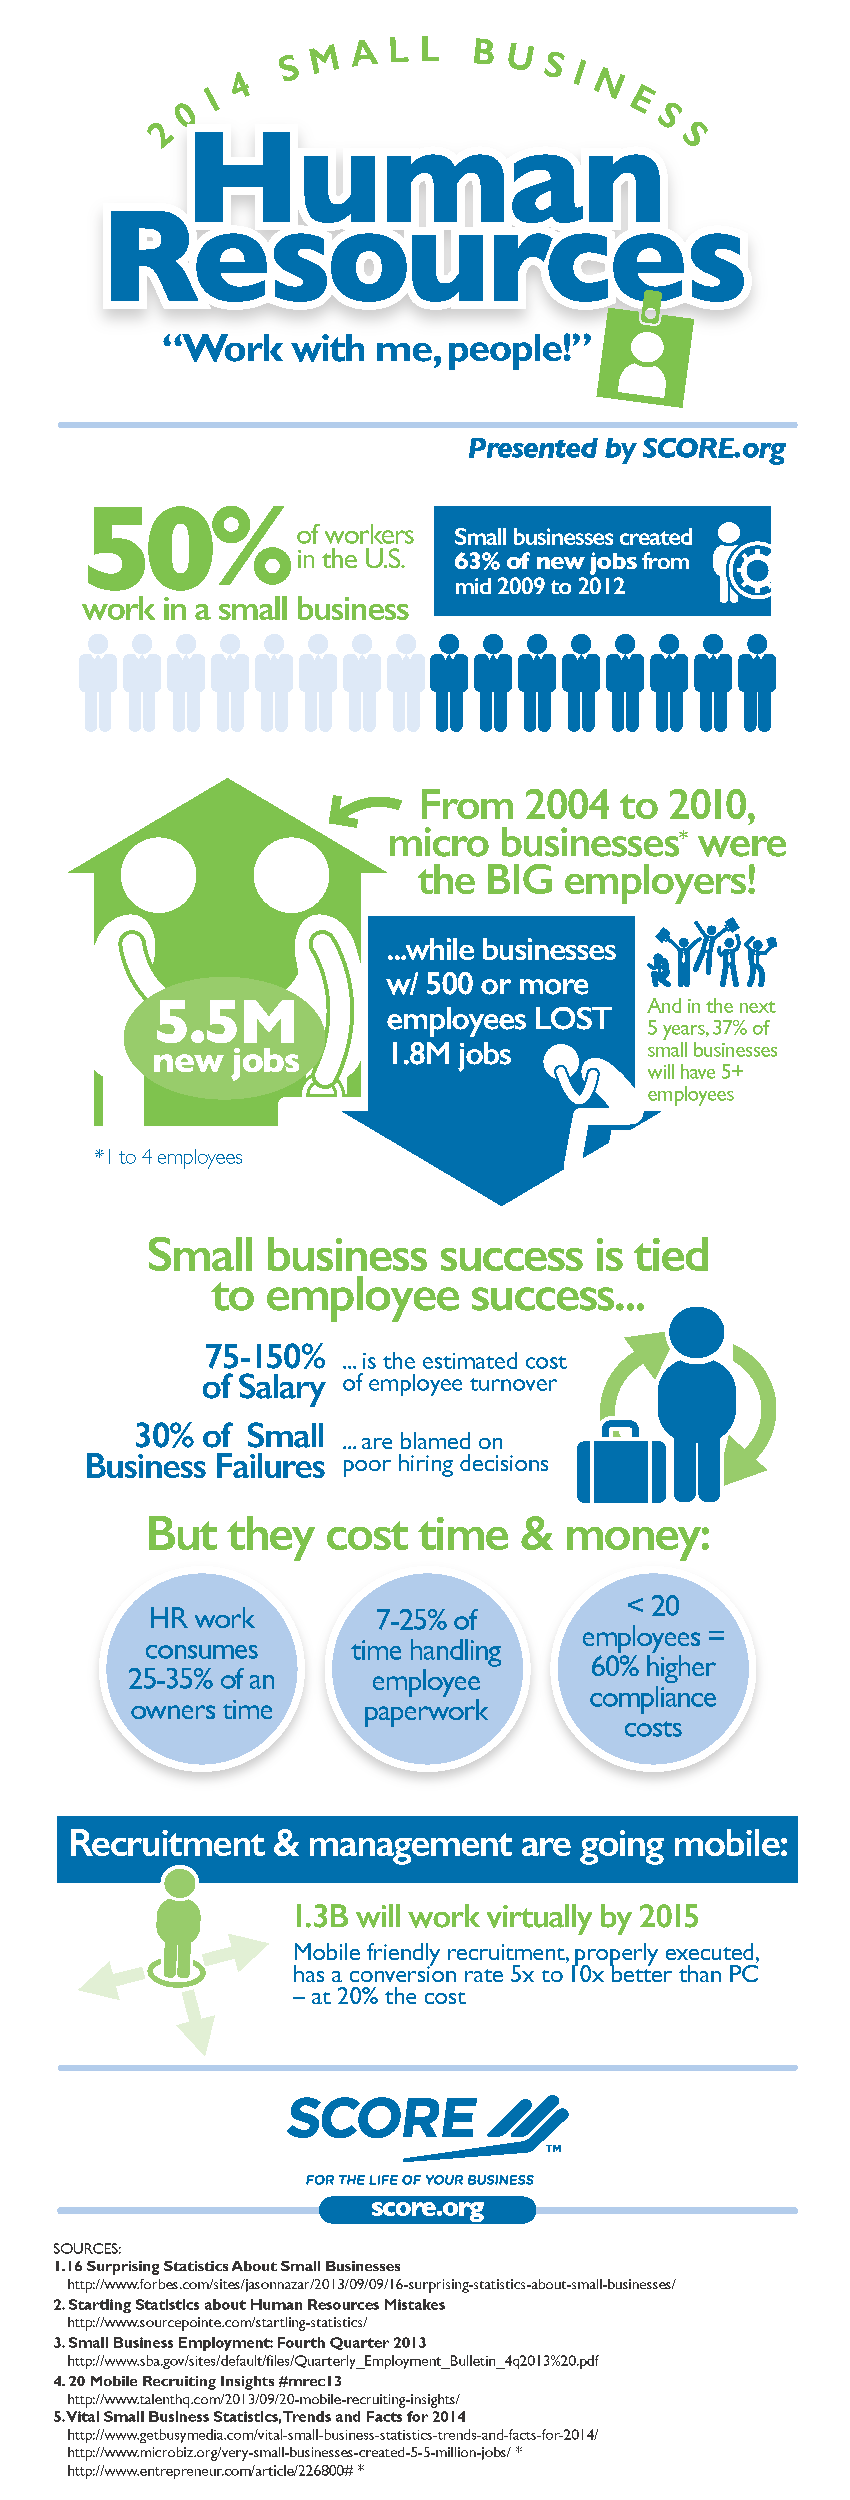 Small business human resources trends